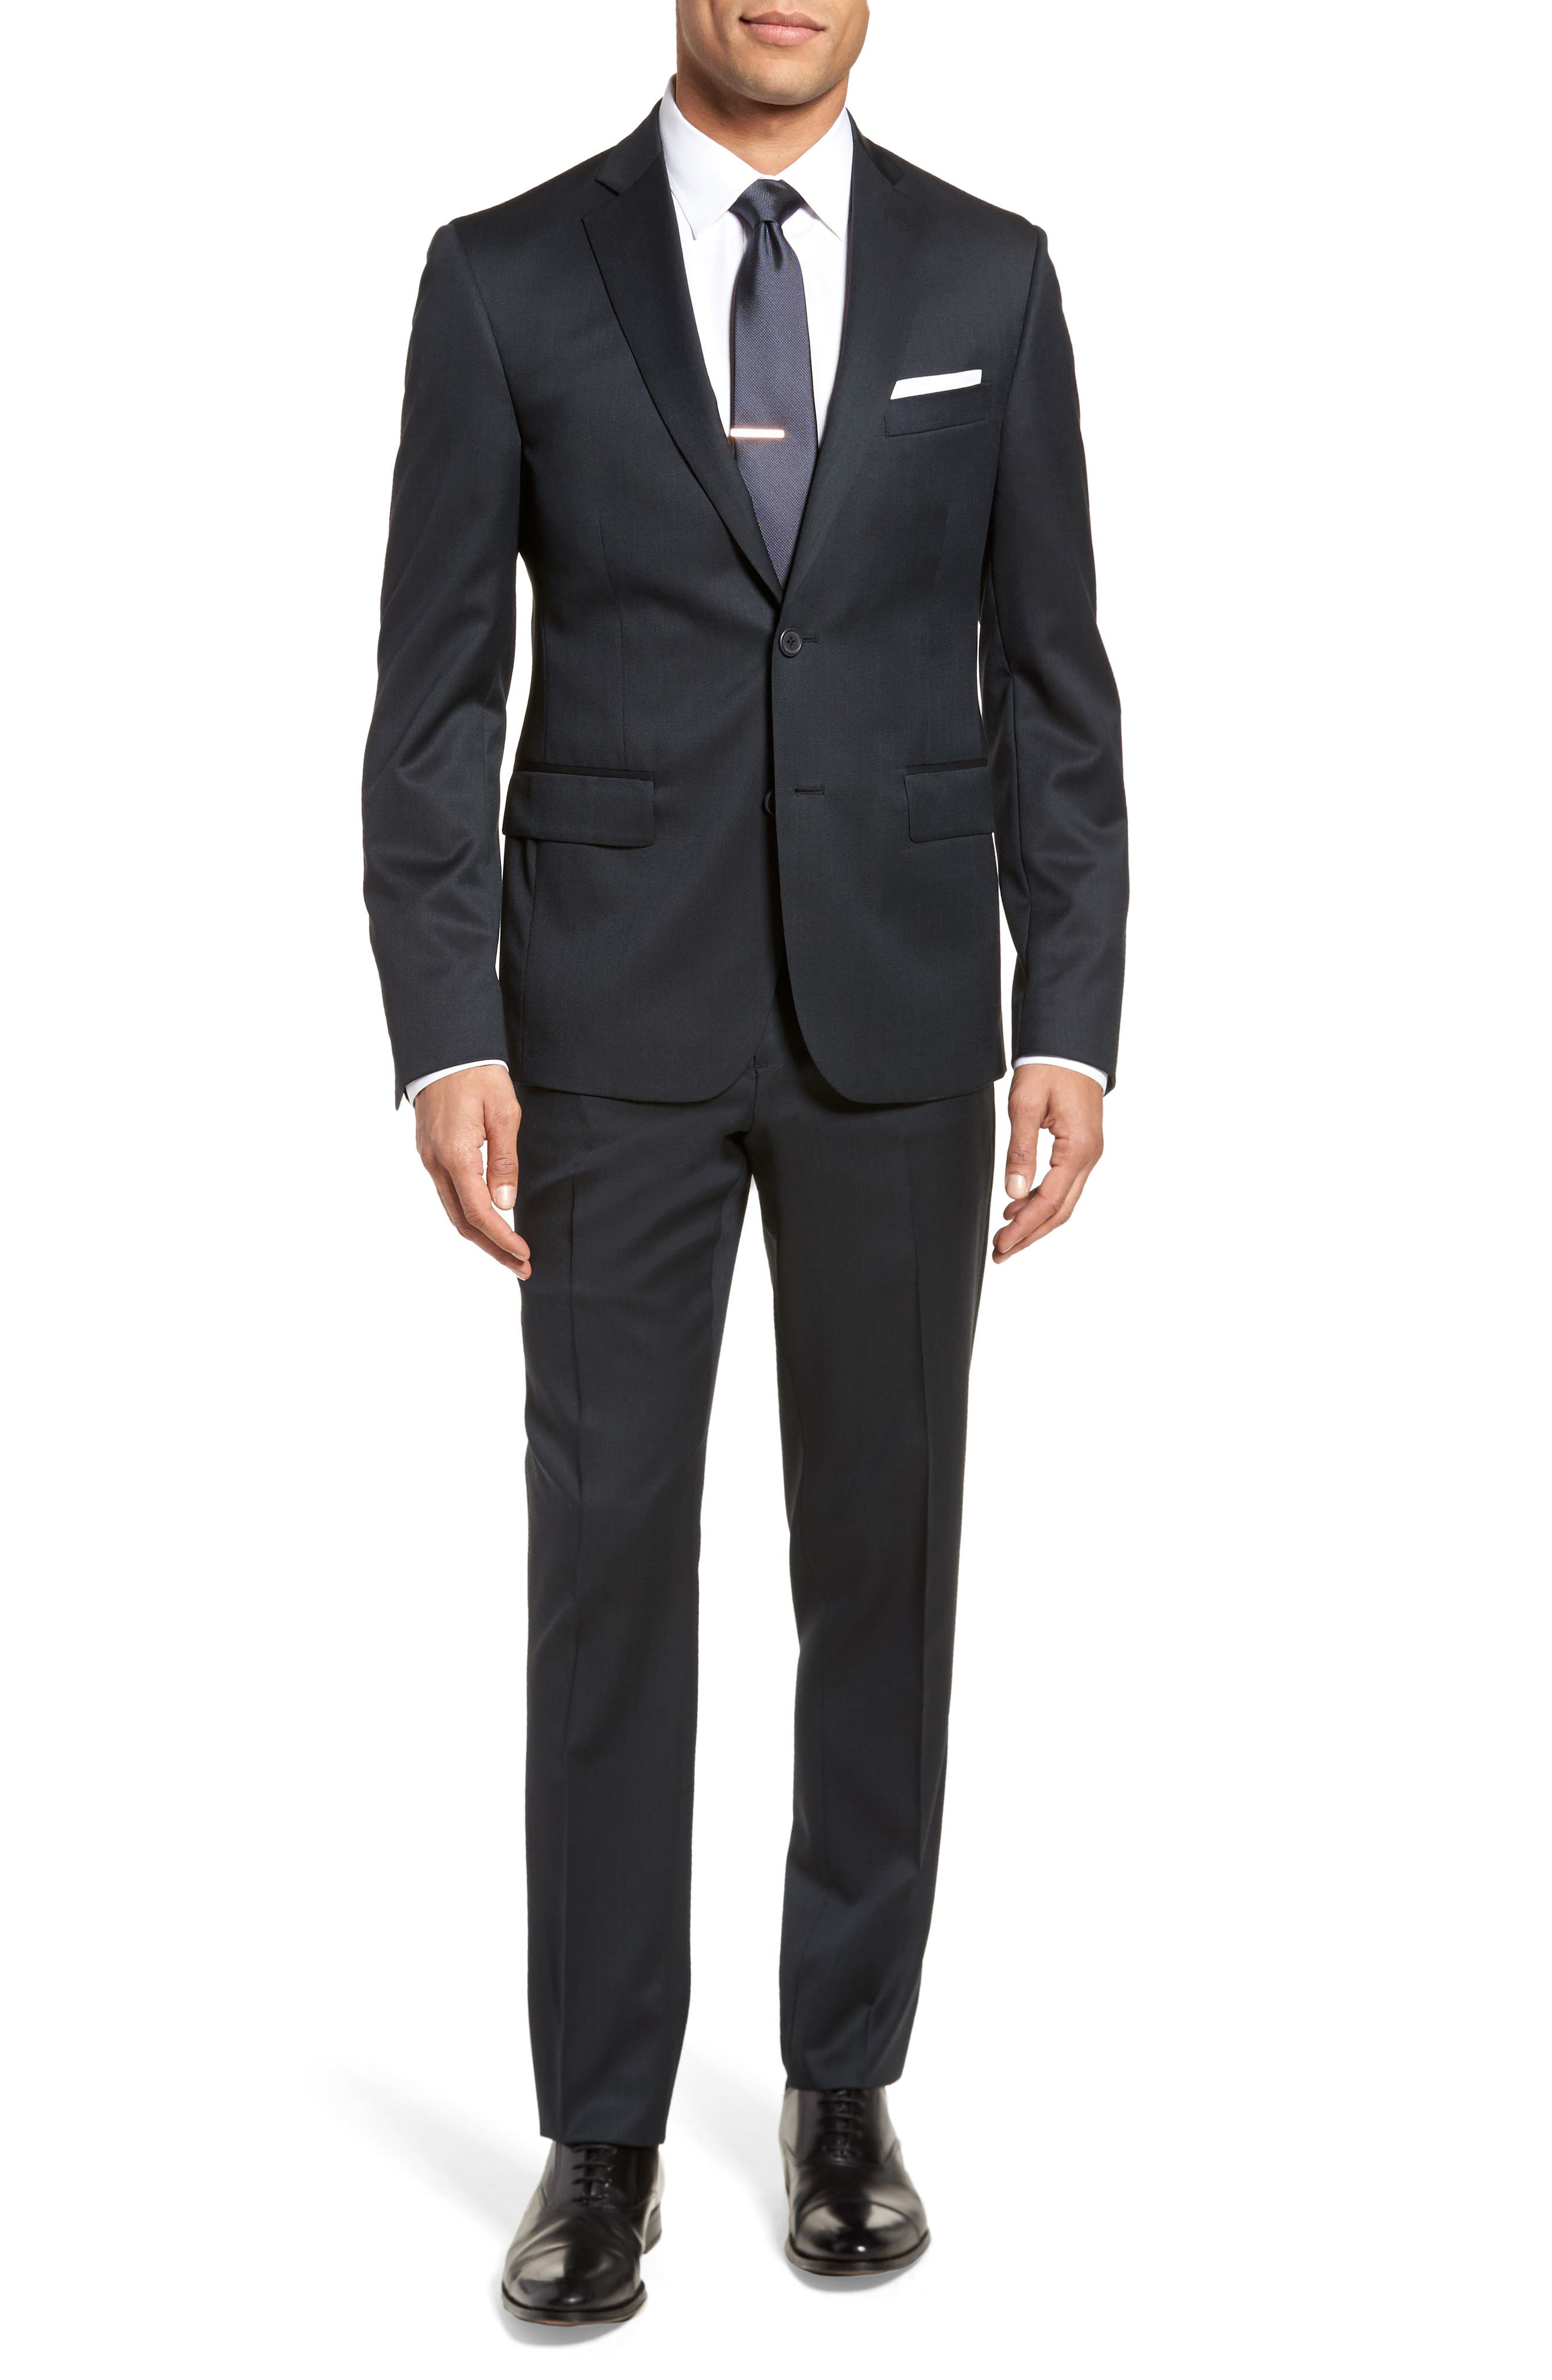 Main Image - Nordstrom Men's Shop Extra Trim Fit Solid Wool Suit